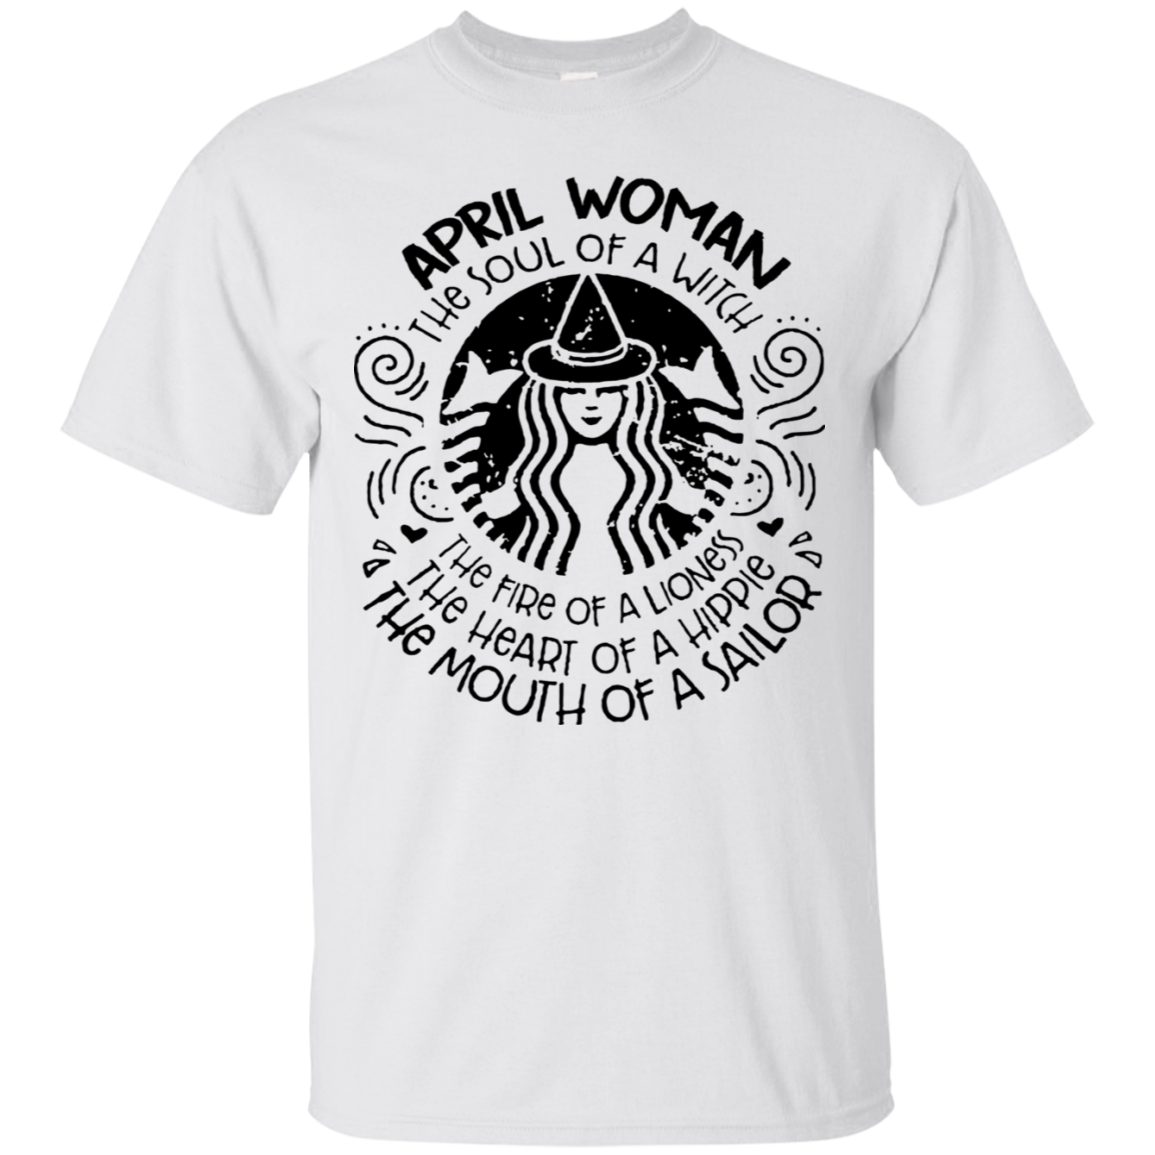 April Woman The Soul Of A Witch Tshirt